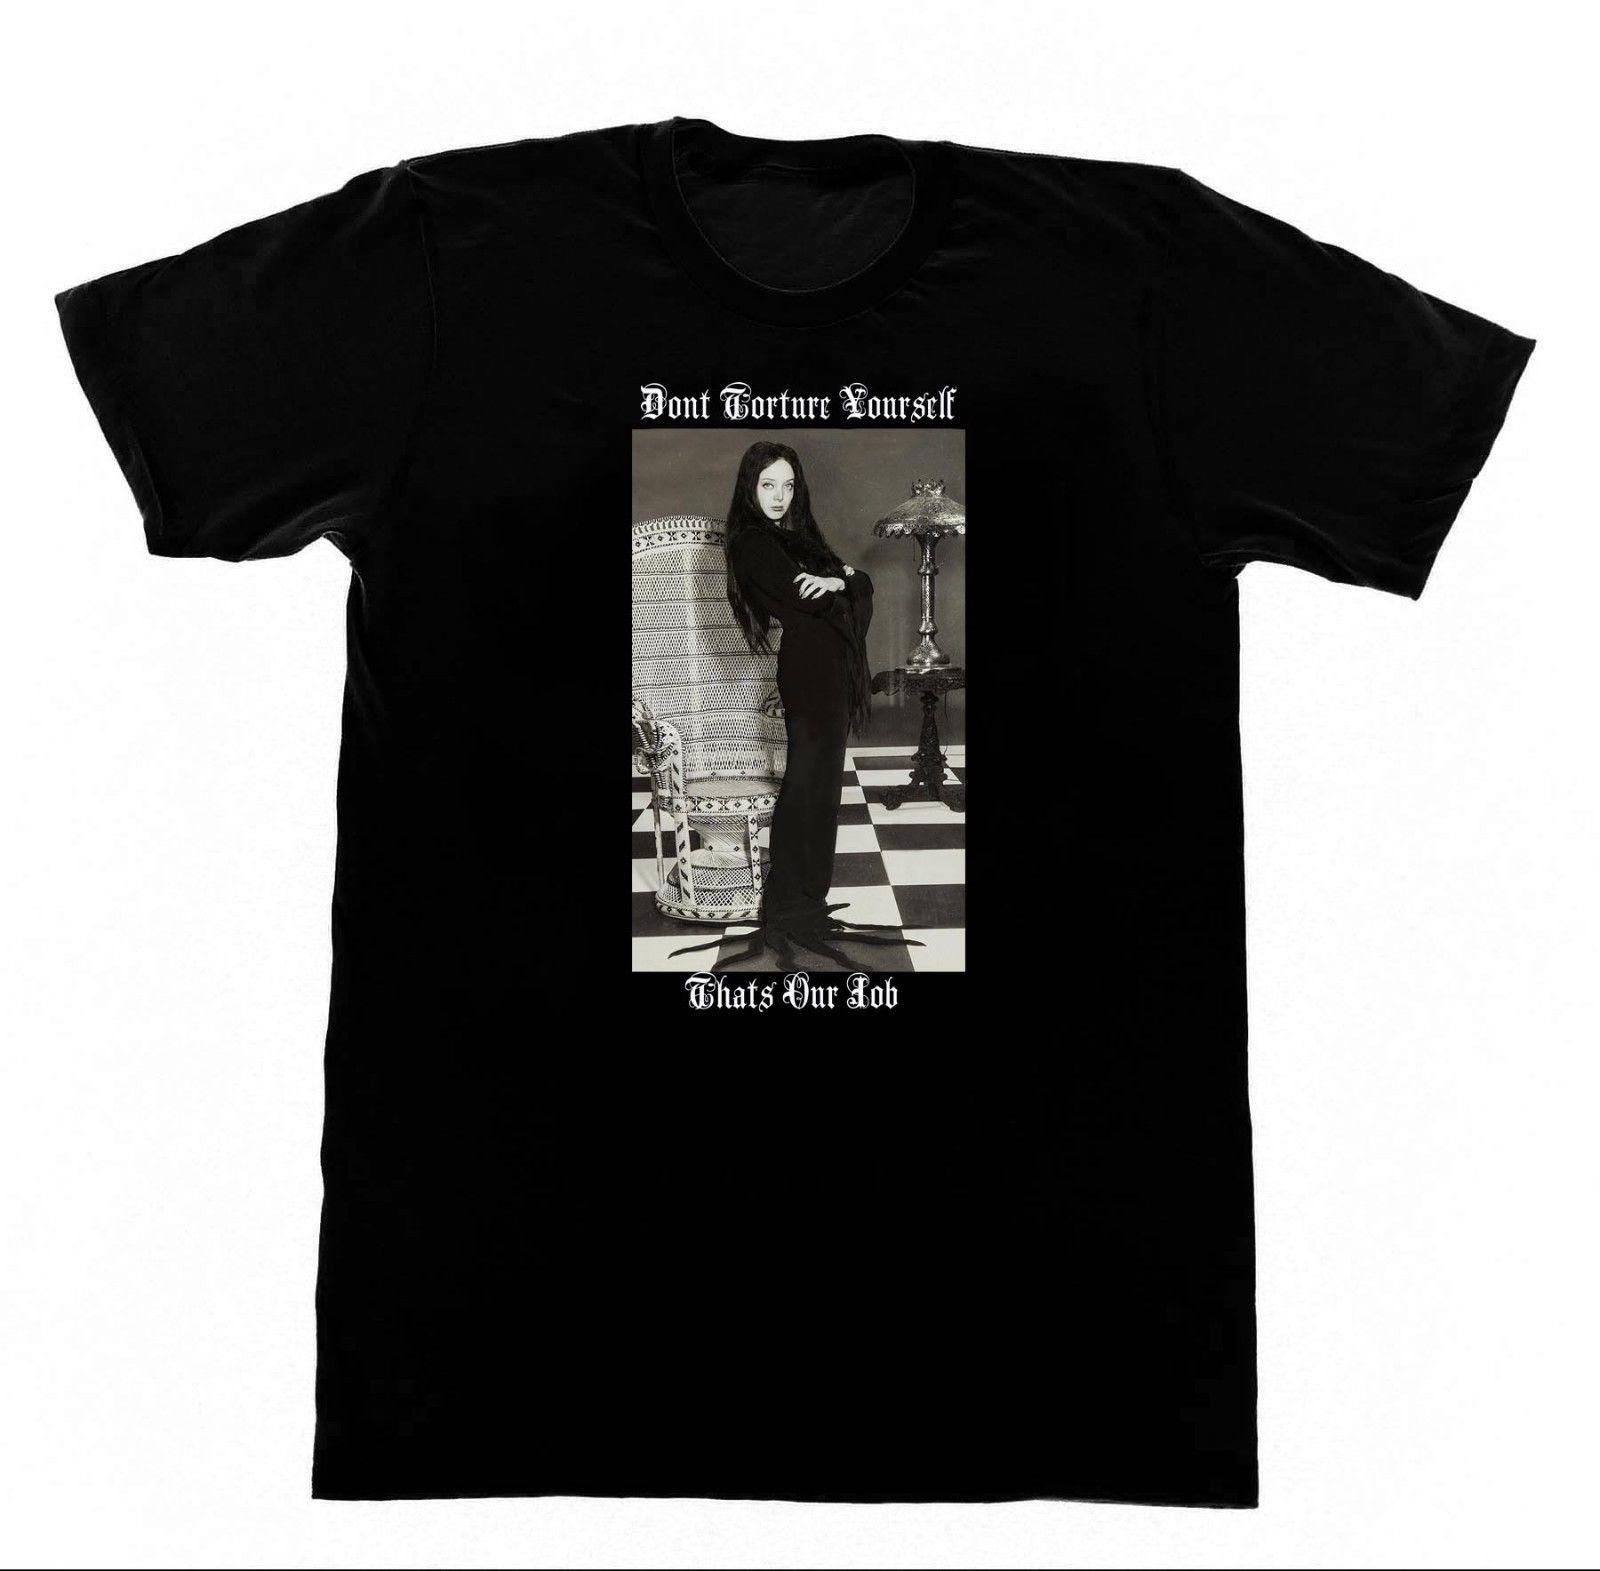 Adams Family - Dont Torture Yourself Tshirt 17 T-Shirt BDSM Bondage Erotica  Free shipping newest Fashion Classic Funny Unique